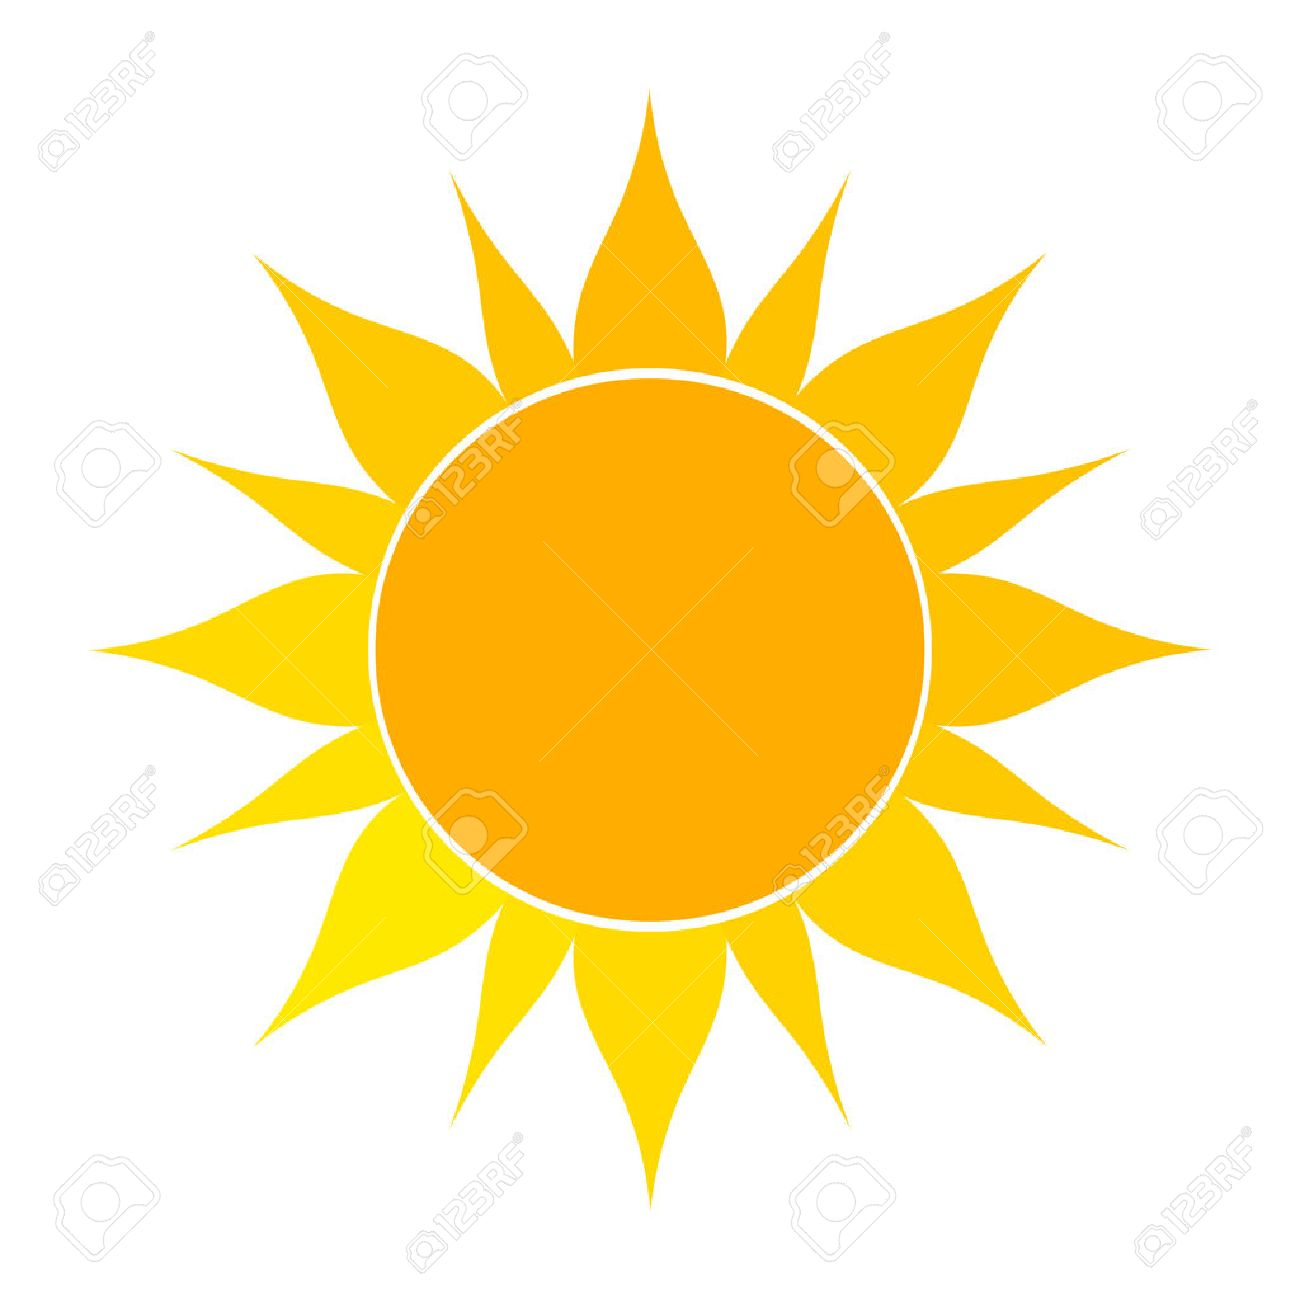 flat sun icon vector illustration on white background royalty free rh 123rf com Boho Sun Vector Graphic sunflower vector icon